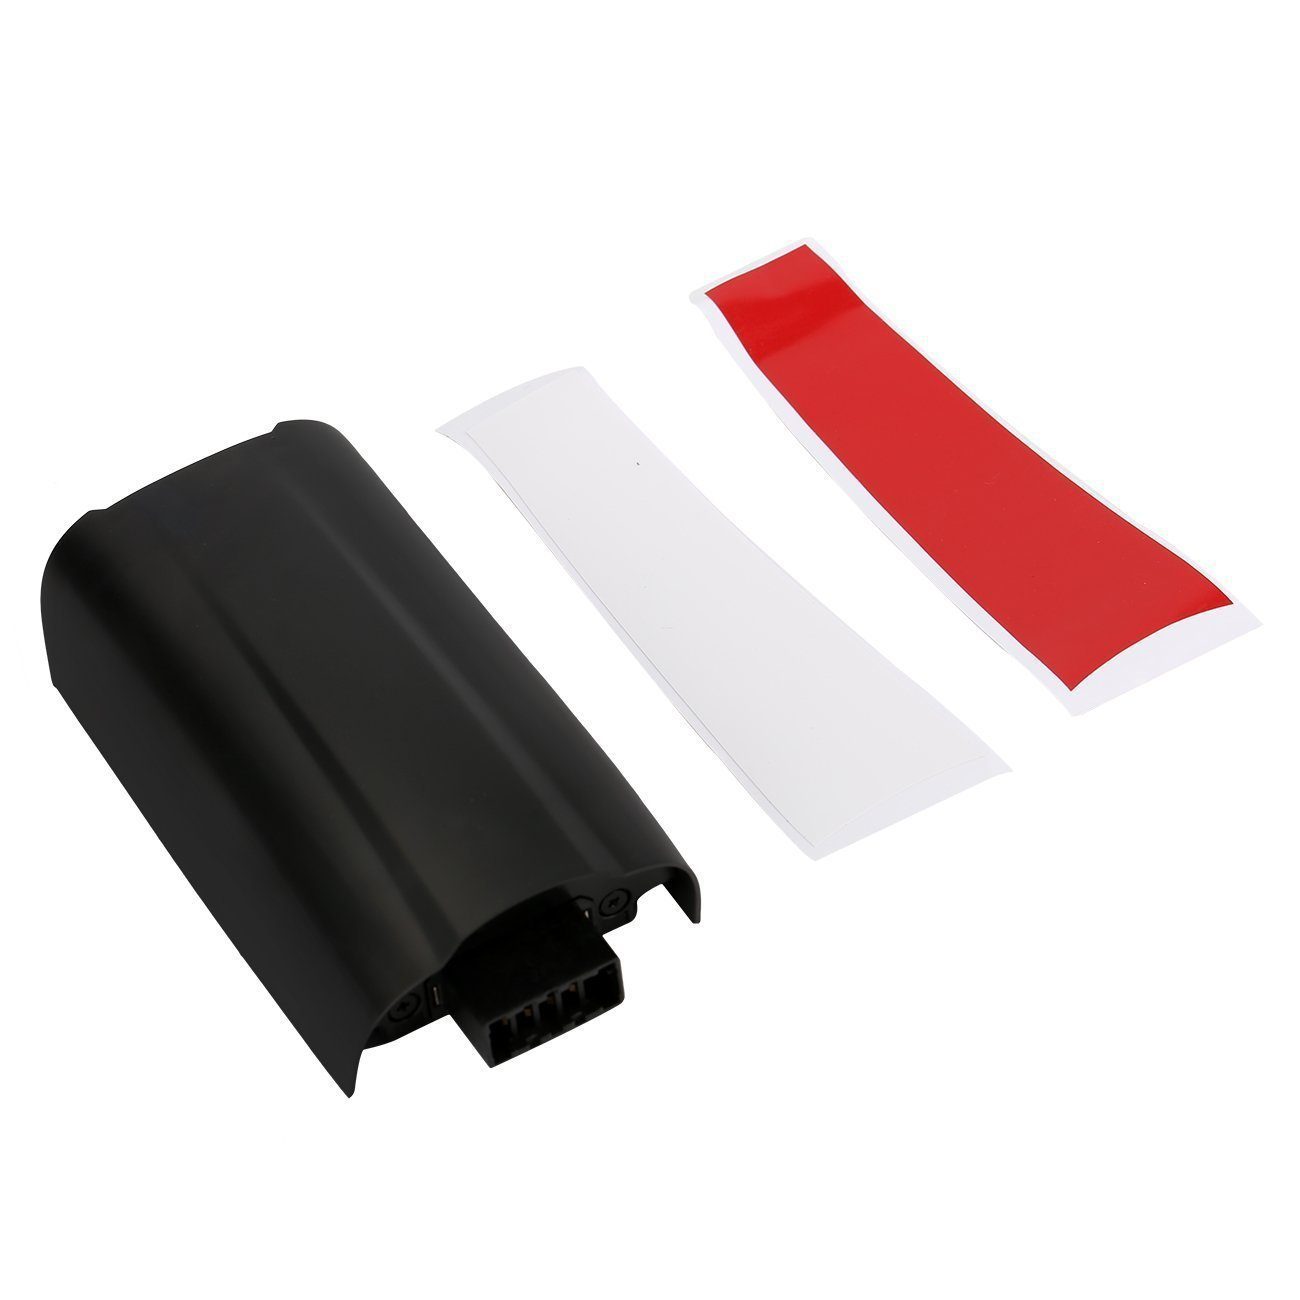 4000mAh 11.1V Rechargeable Lipo Battery for Parrot Bebop 2 Drone